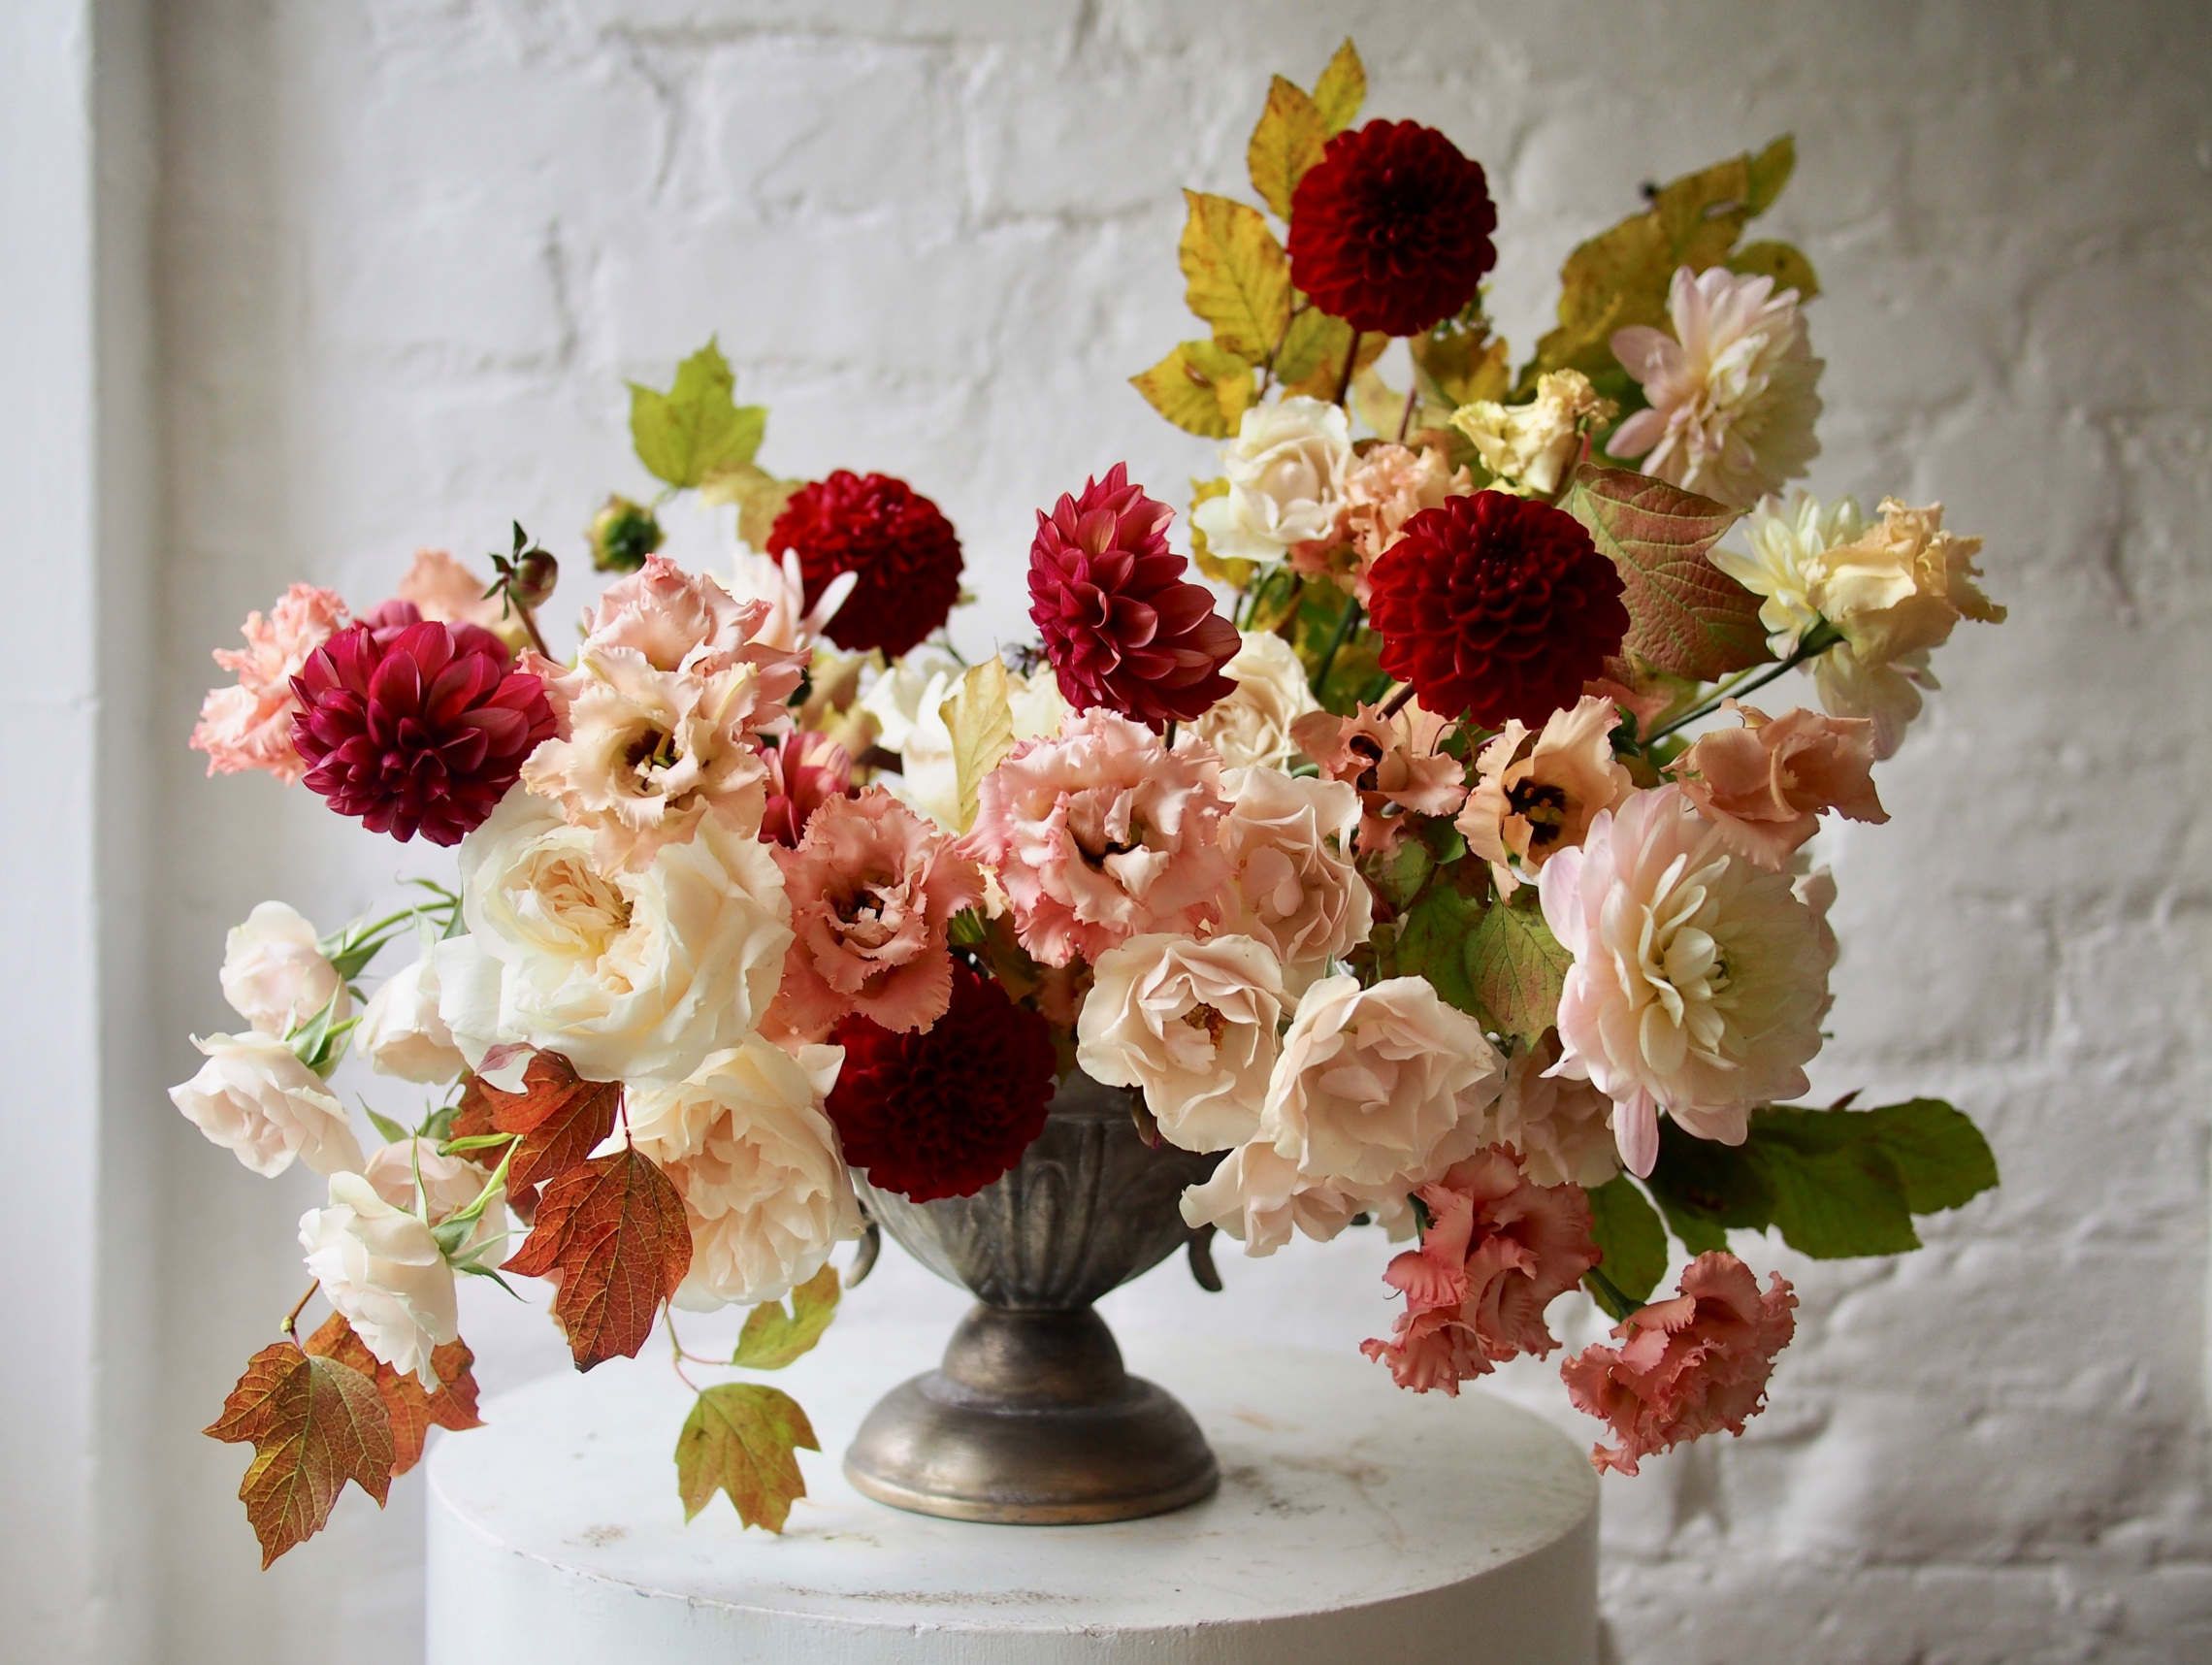 A bouquet of pink and red flowers in an antique urn by florist JamJar Flowers